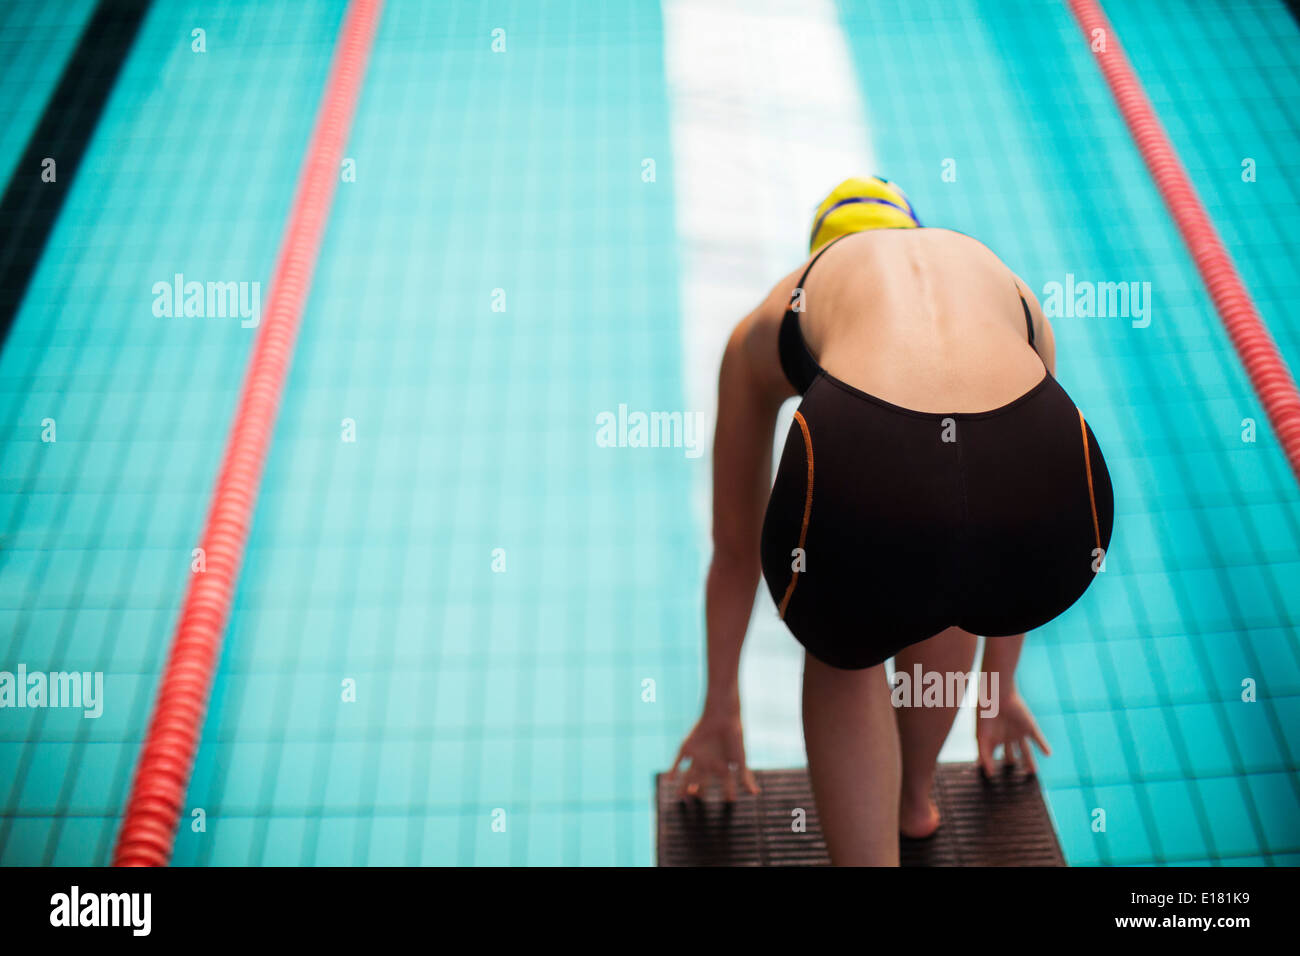 Swimmer poised at starting block above pool - Stock Image